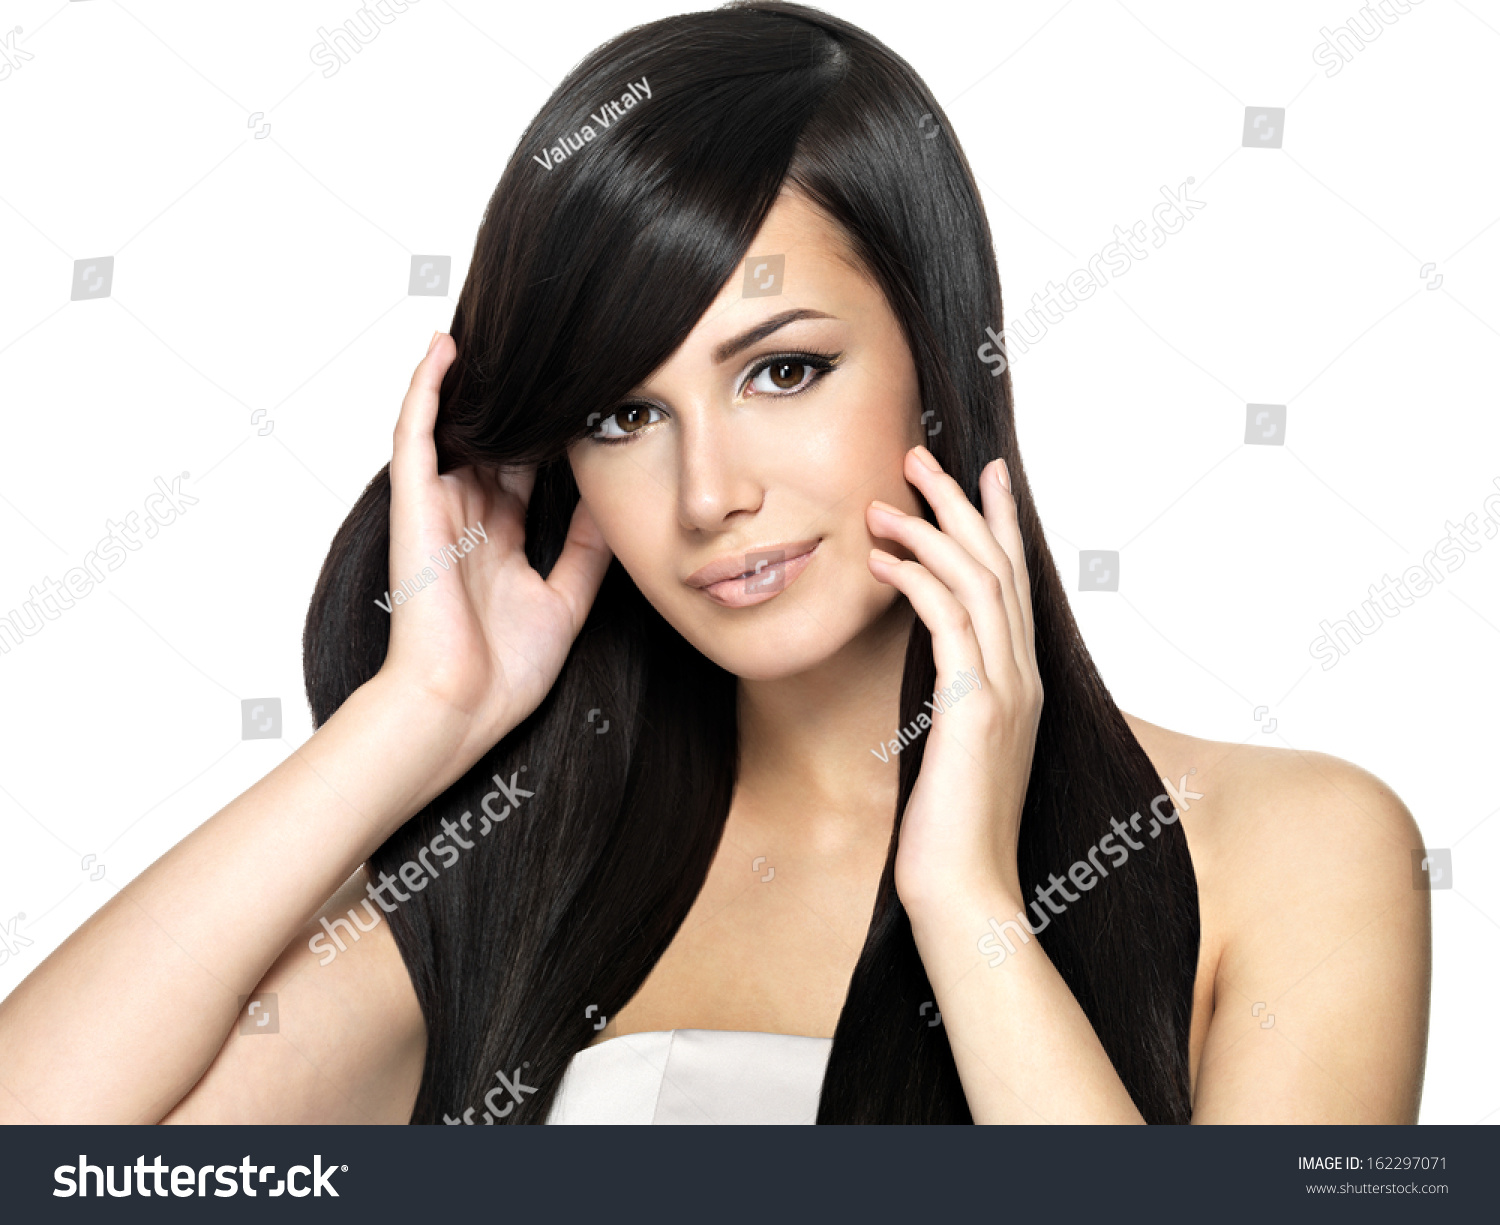 Wondrous Woman With Beauty Long Straight Hair Pretty Young Girl With Short Hairstyles For Black Women Fulllsitofus